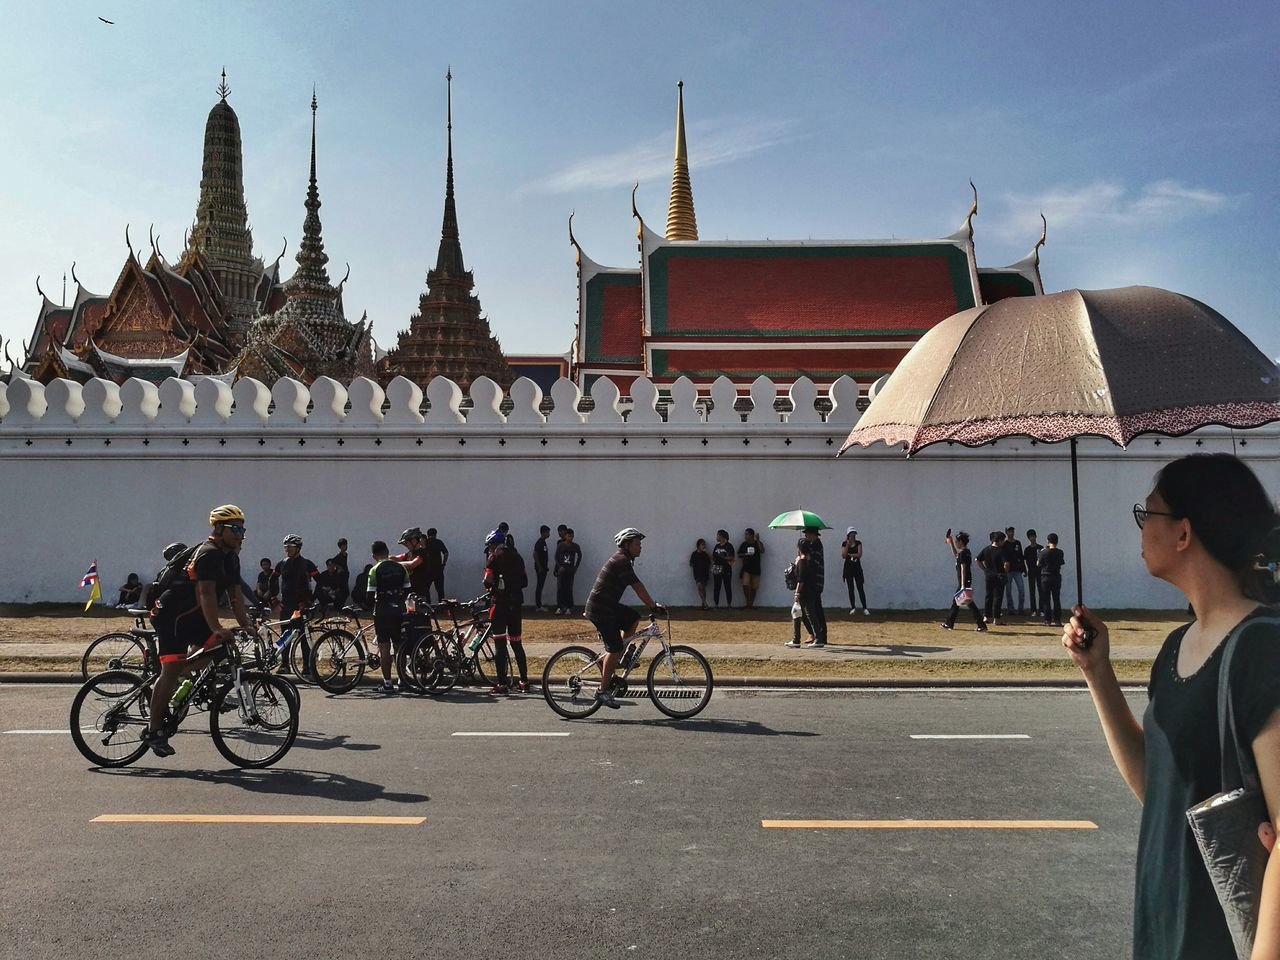 Architecture Building Exterior Travel Destinations Bicycle Built Structure City Sky Outdoors Horizontal People Person Adult Day Thailand Thailand Photos King Of Thailand Grand Palace Bangkok Thailand HuaweiP9 Snapseed